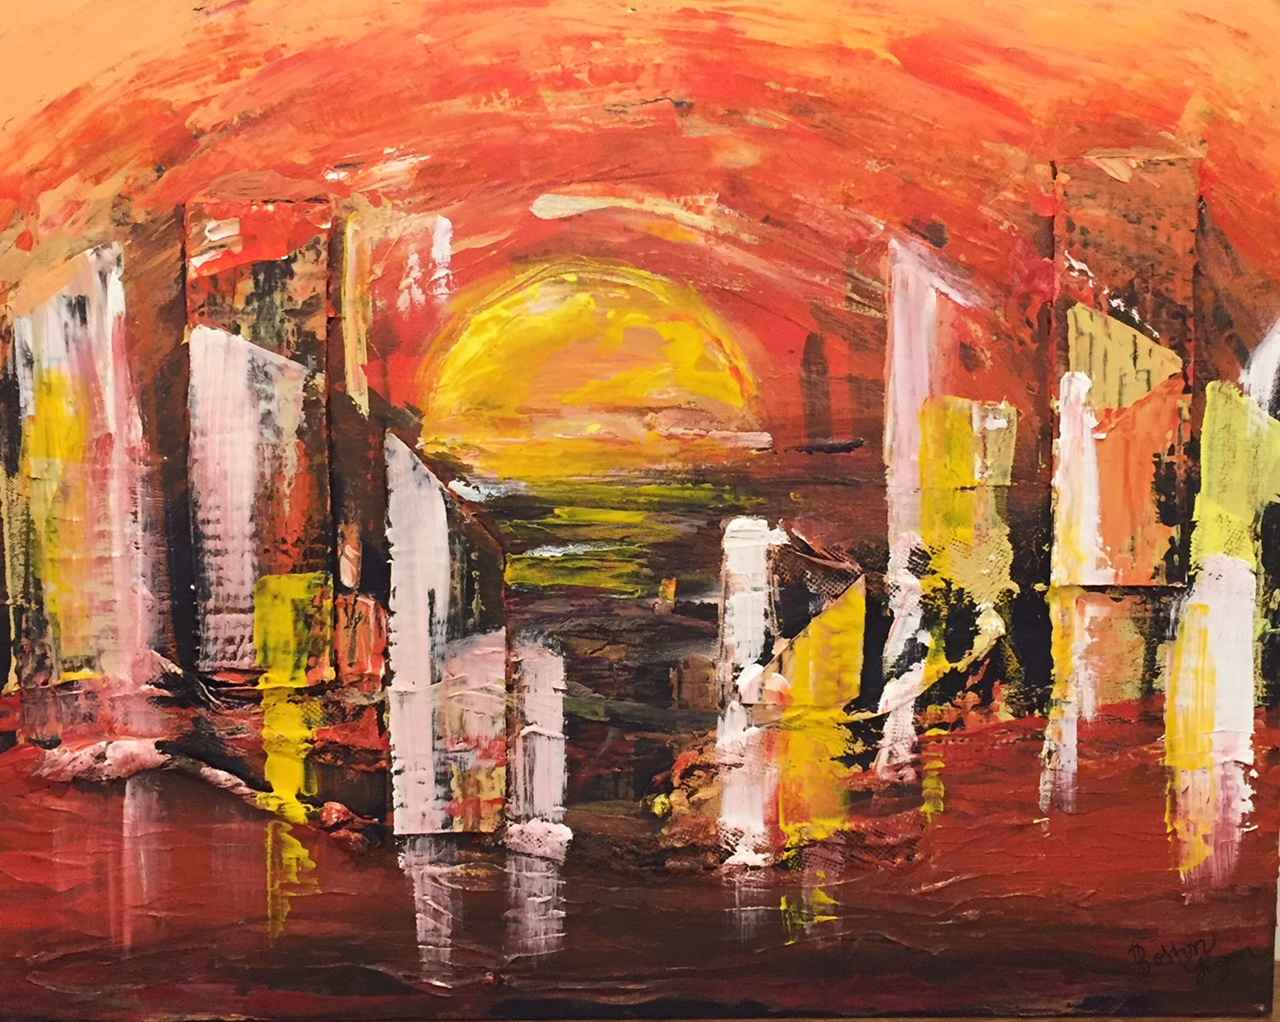 Hot Summer in the City by  Boston Logan - Masterpiece Online